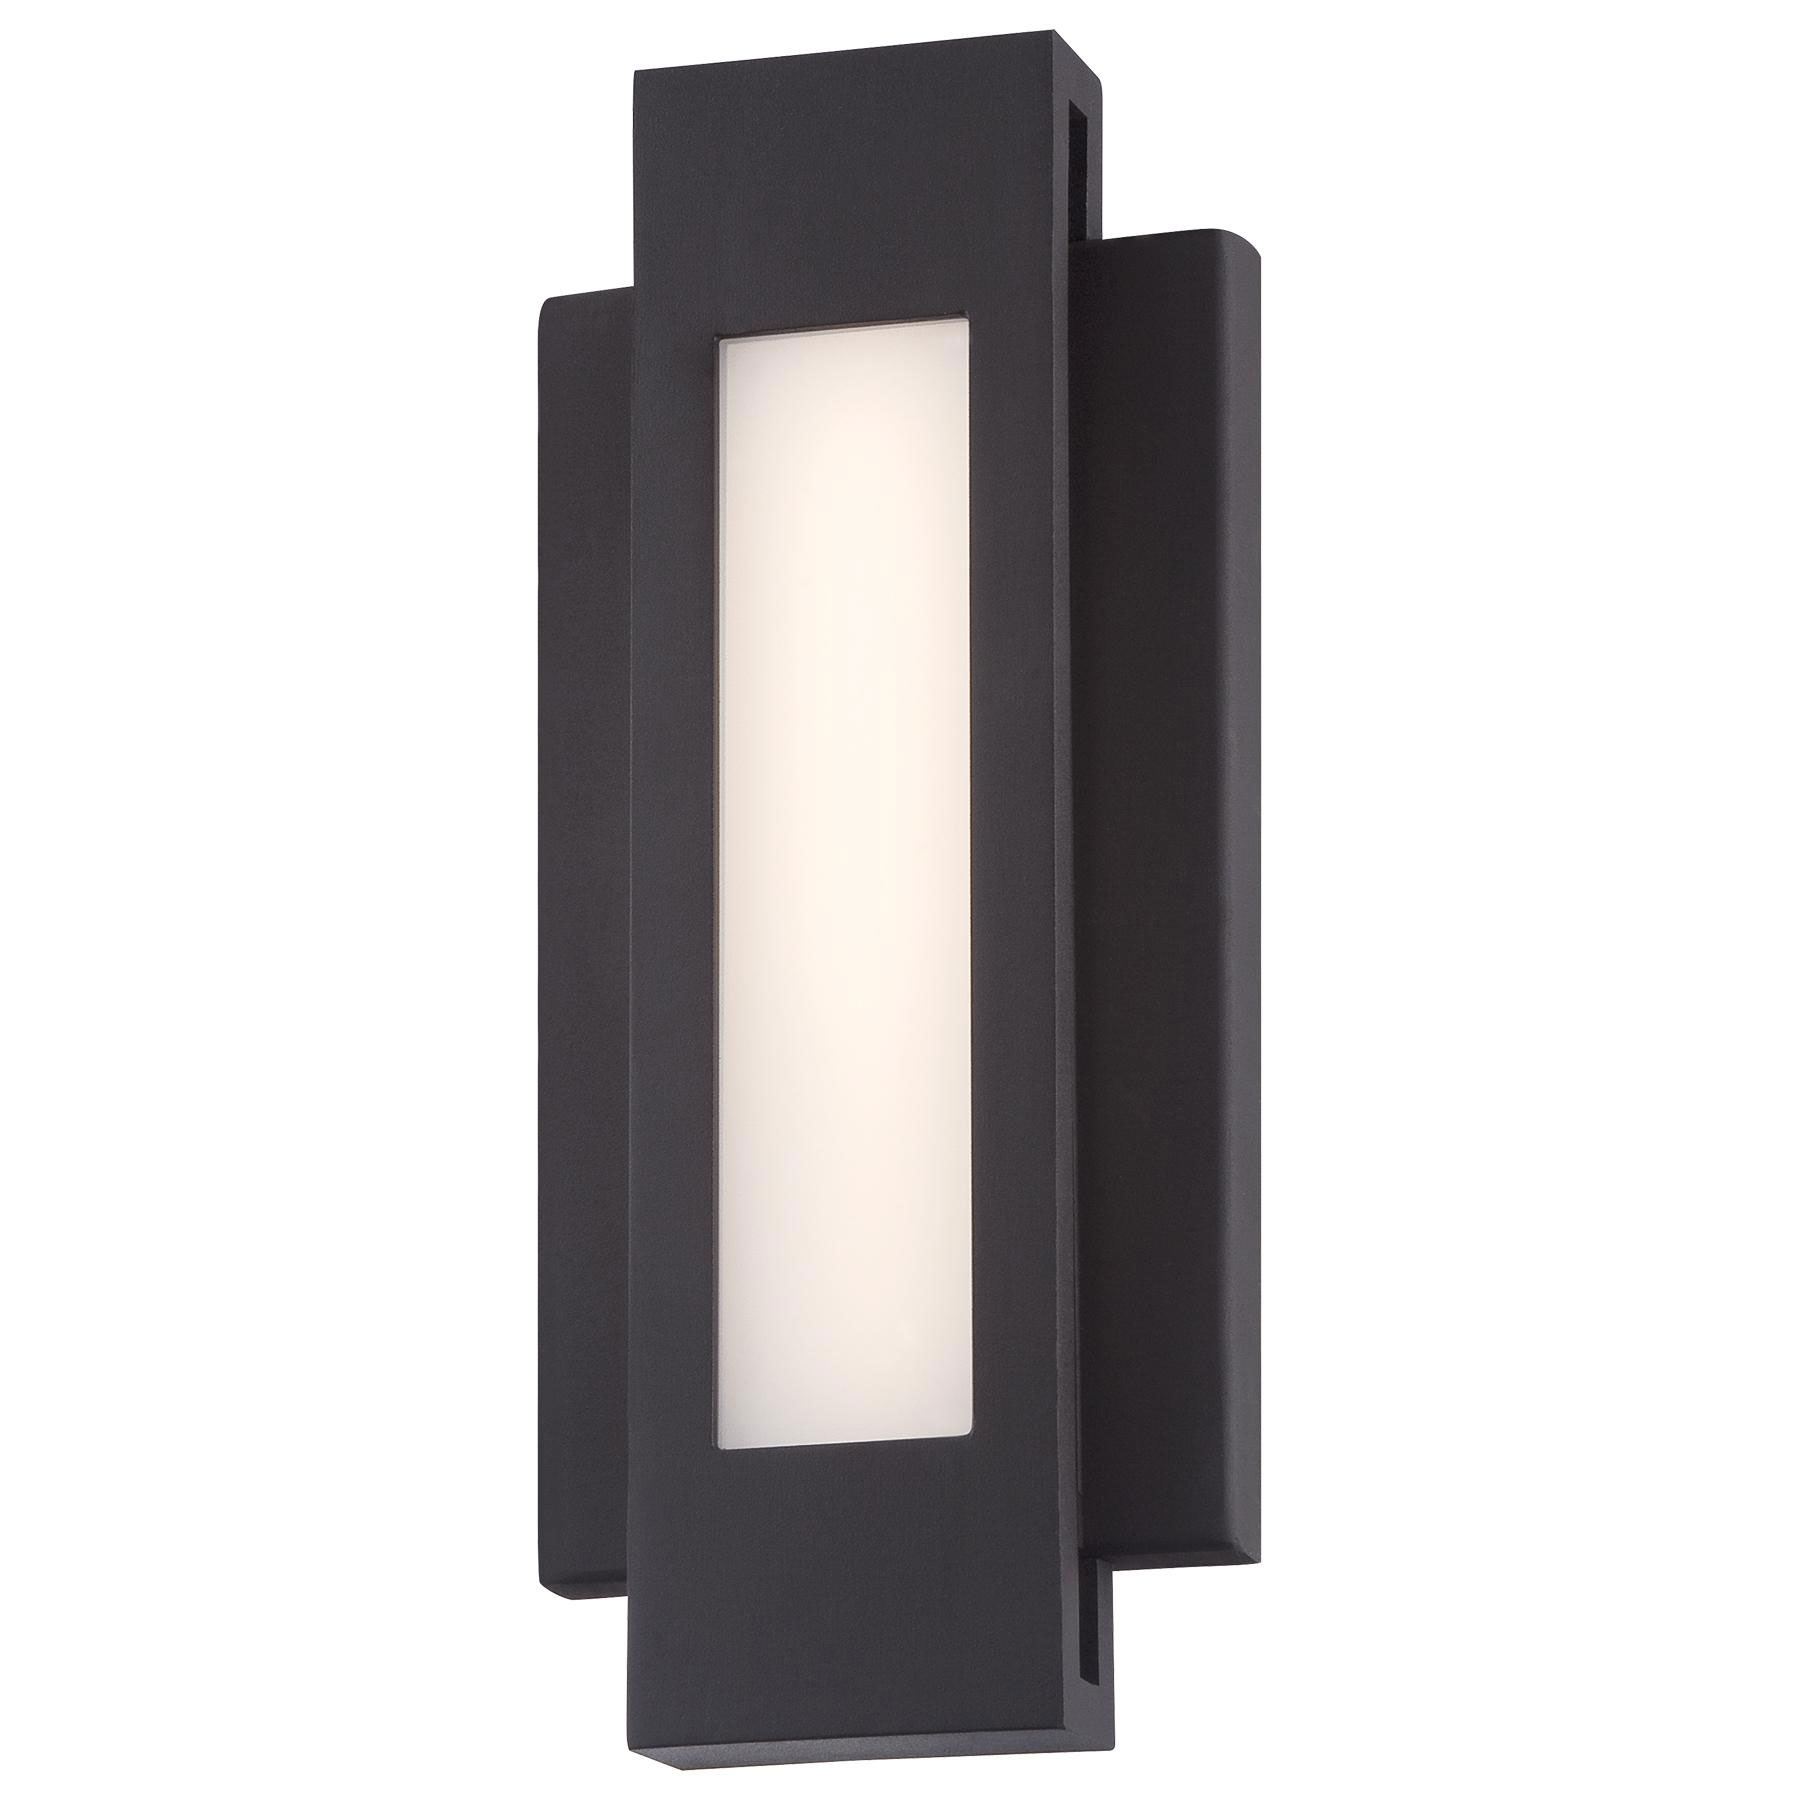 Insert outdoor led wall sconce by george kovacs p1230 286 l mozeypictures Gallery